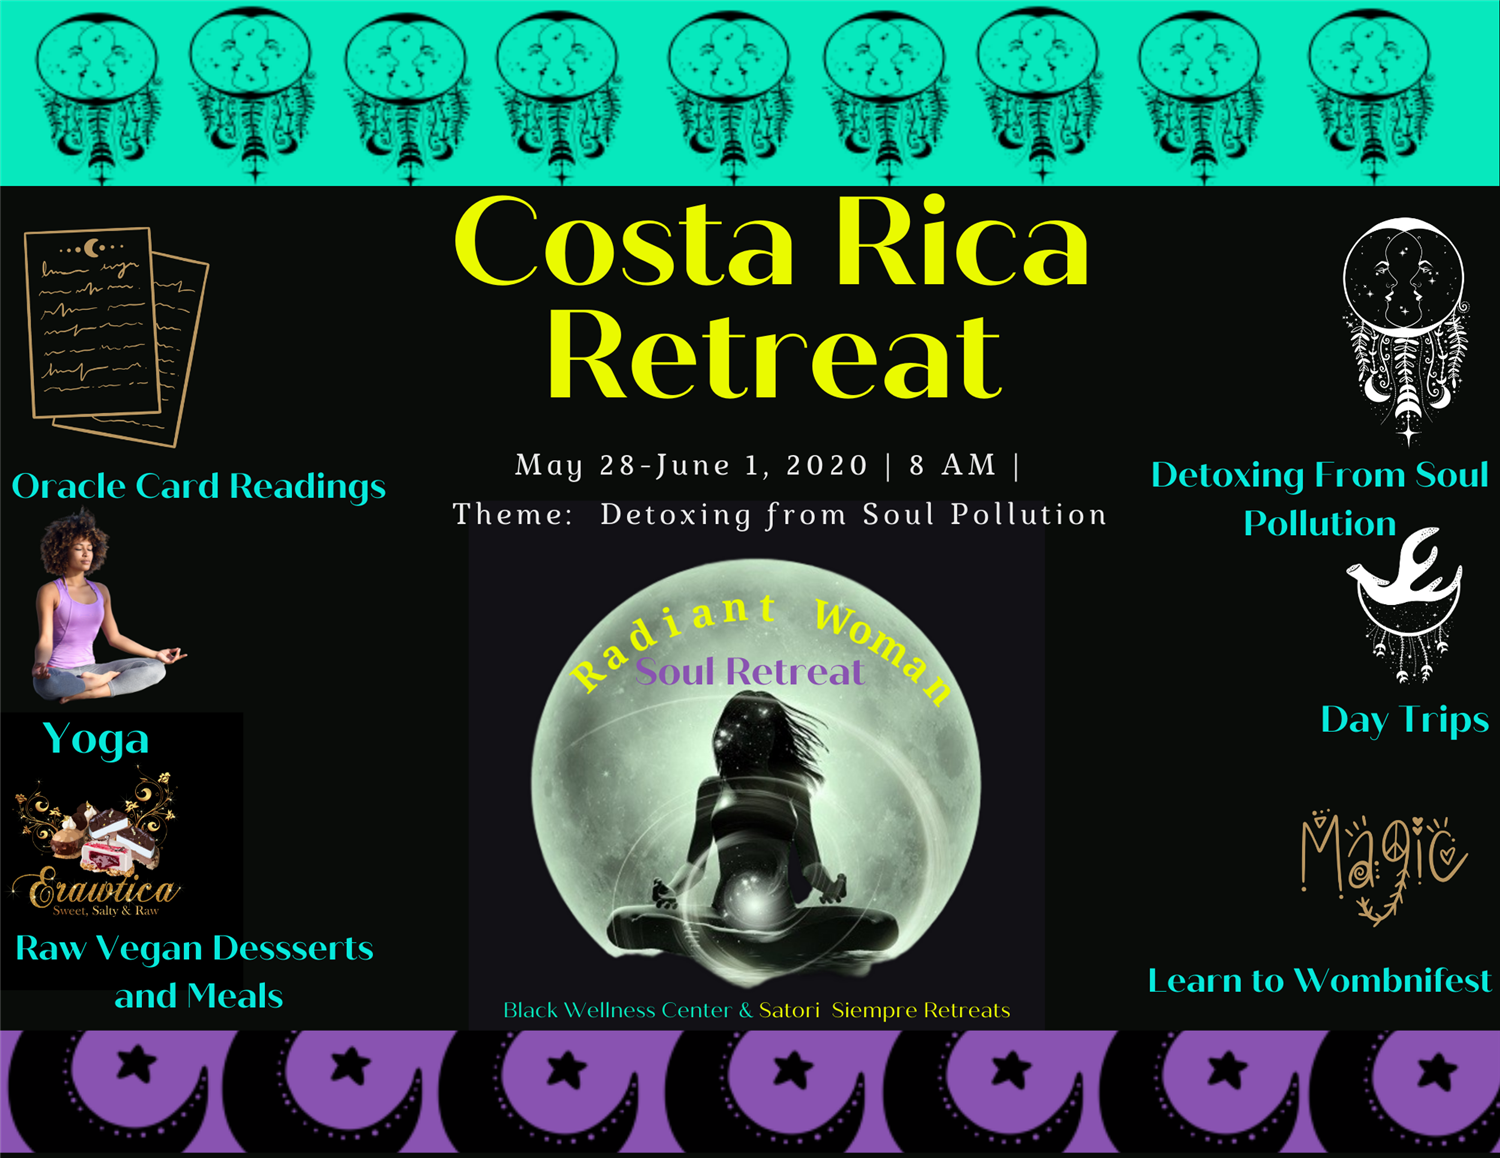 Radiant Woman Soul Retreat Healing Retreat In Costa Rica on May 28, 20:00@Radiant Woman Soul Retreat - Buy tickets and Get information on Black Wellness Center